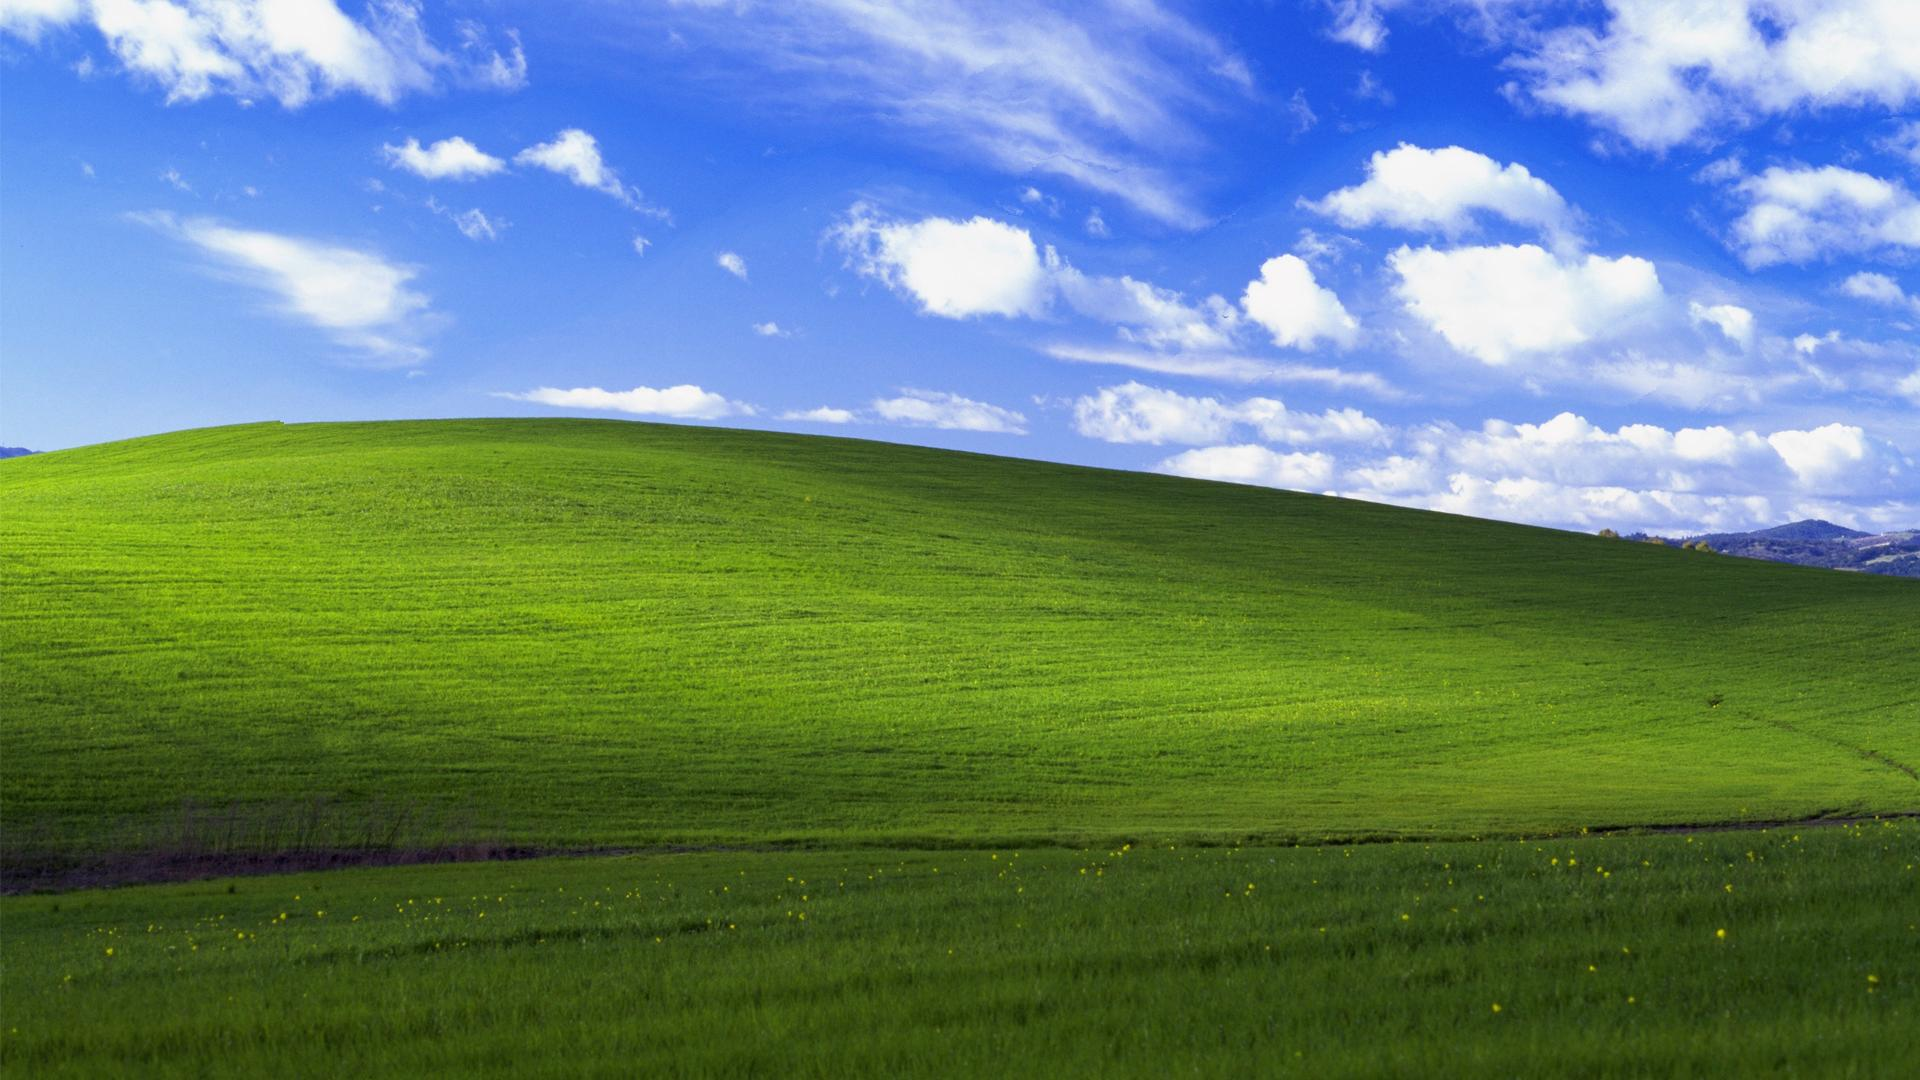 50 Cool Windows XP Wallpapers In HD For Download 1920x1080